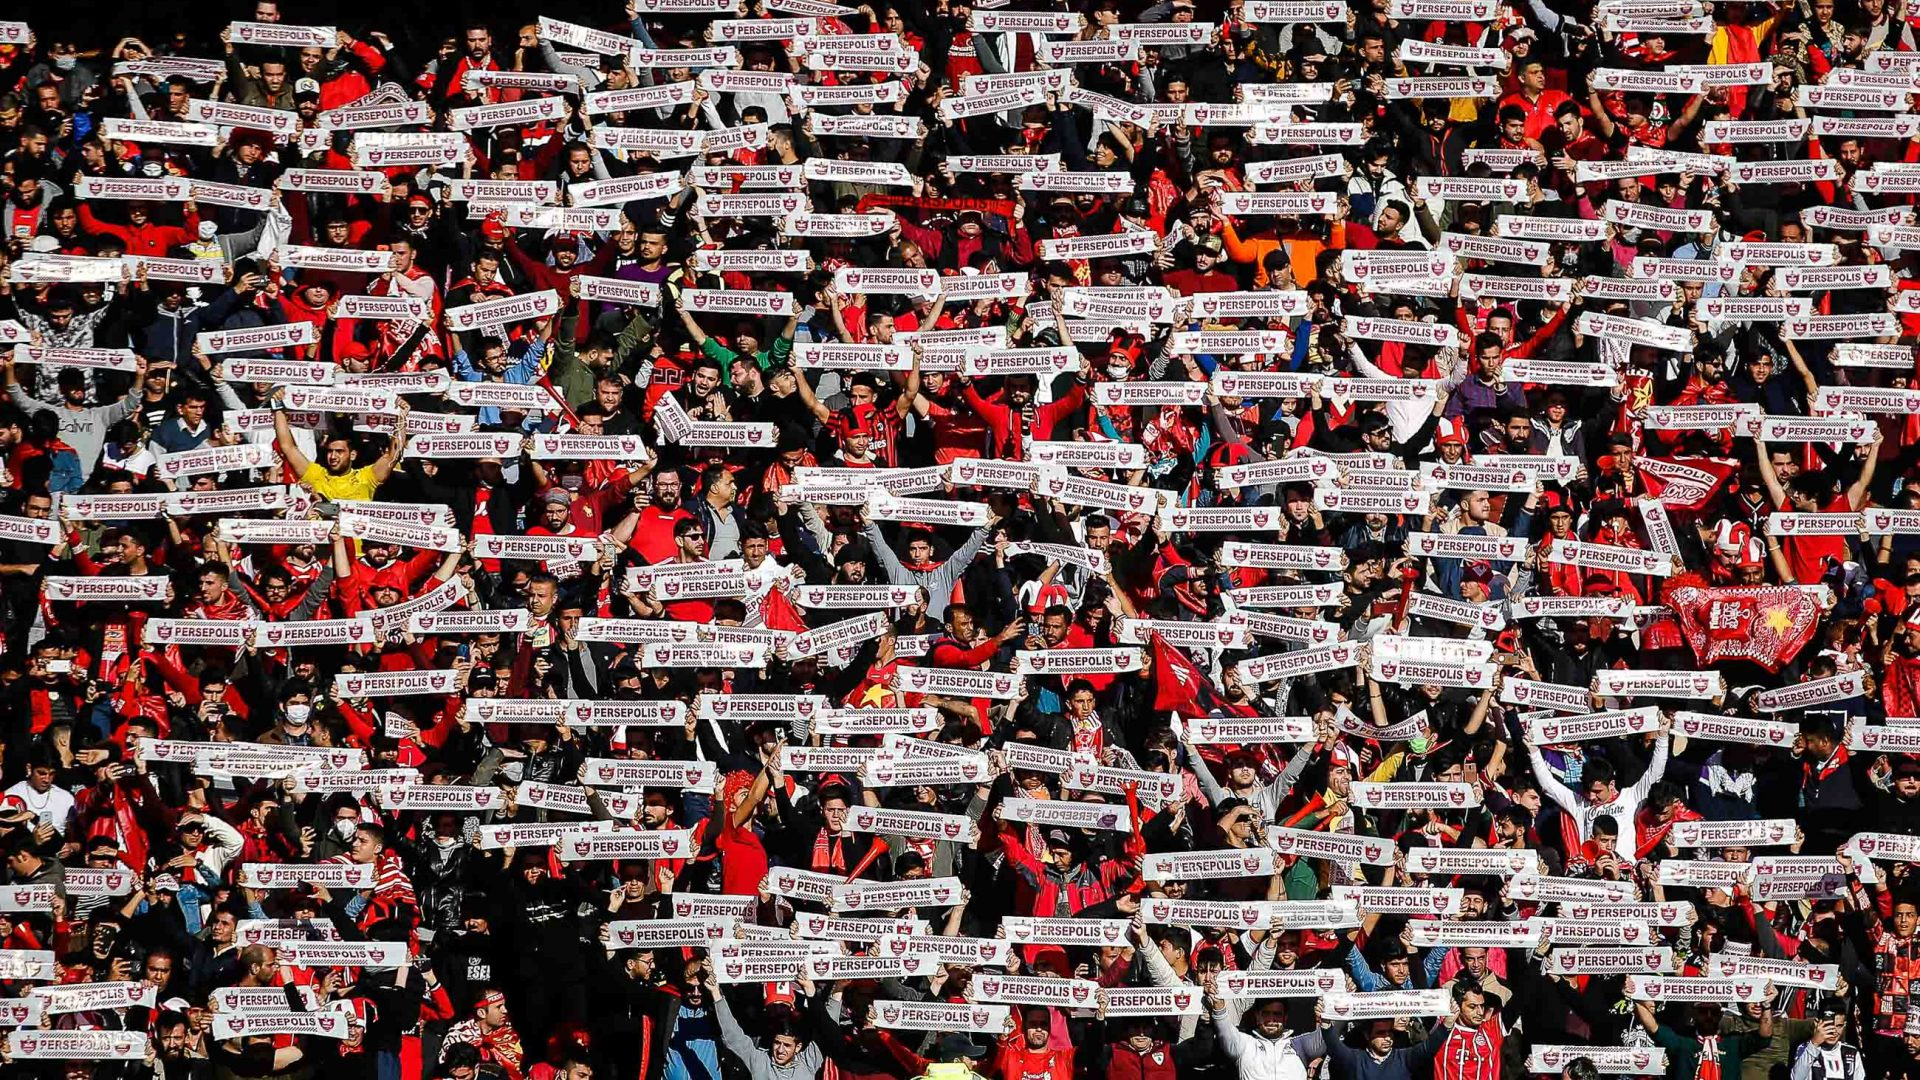 Persepolis fans at the Tehran Derby.